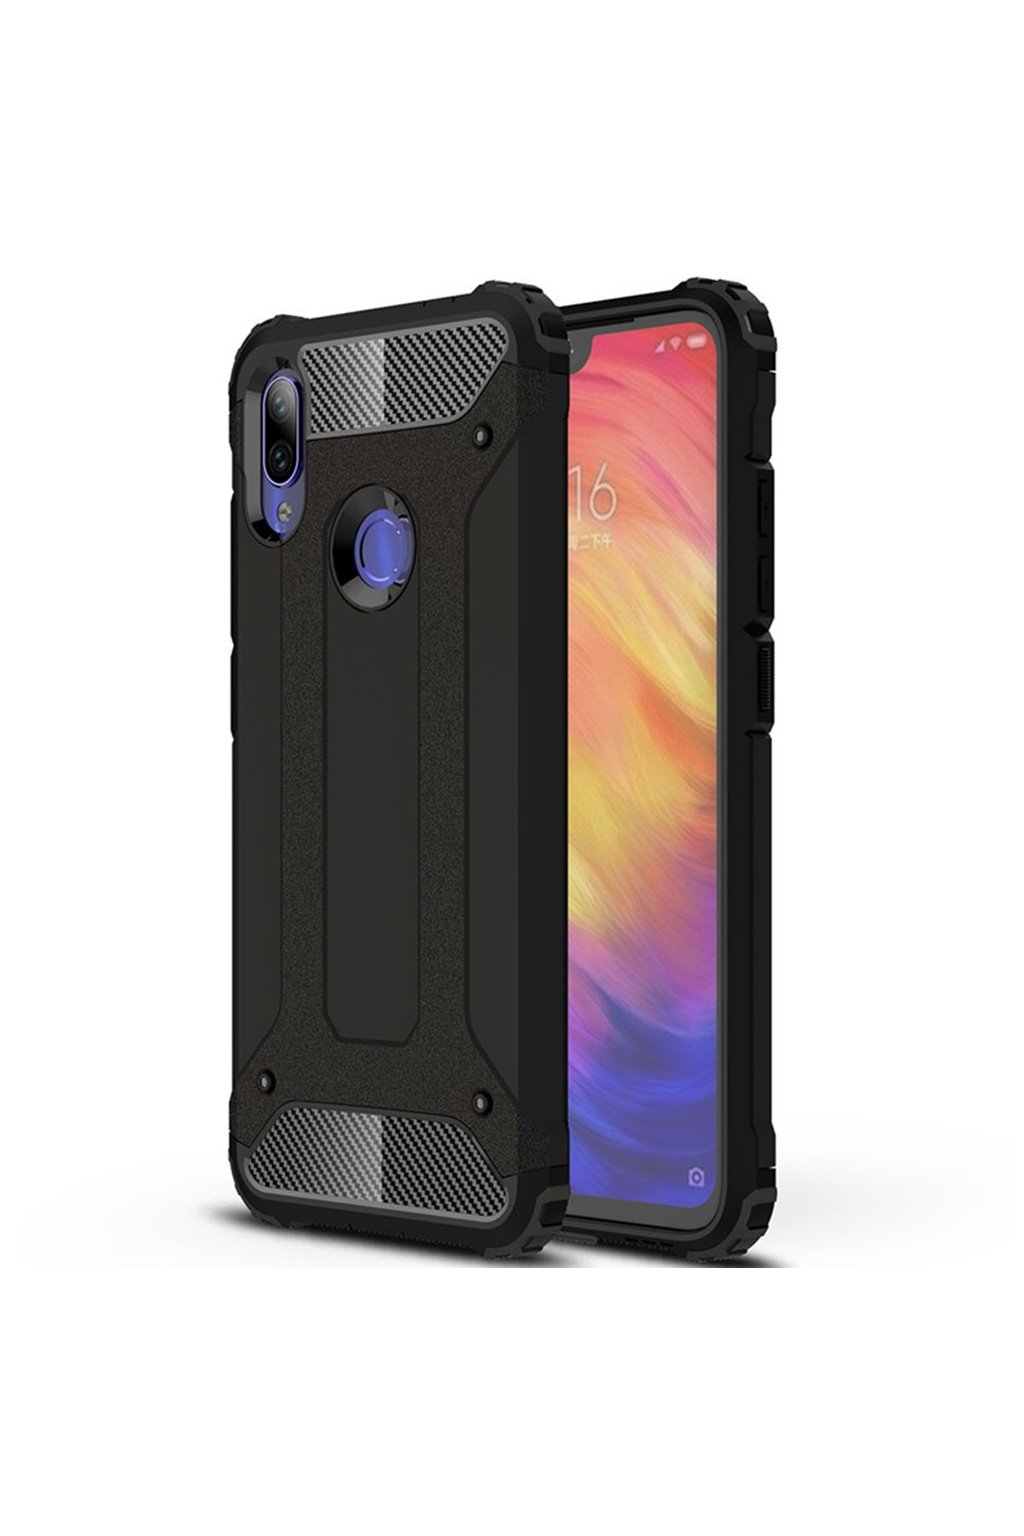 eng pl Hybrid Armor Case Tough Rugged Cover for Xiaomi Redmi Note 7 black 48124 1